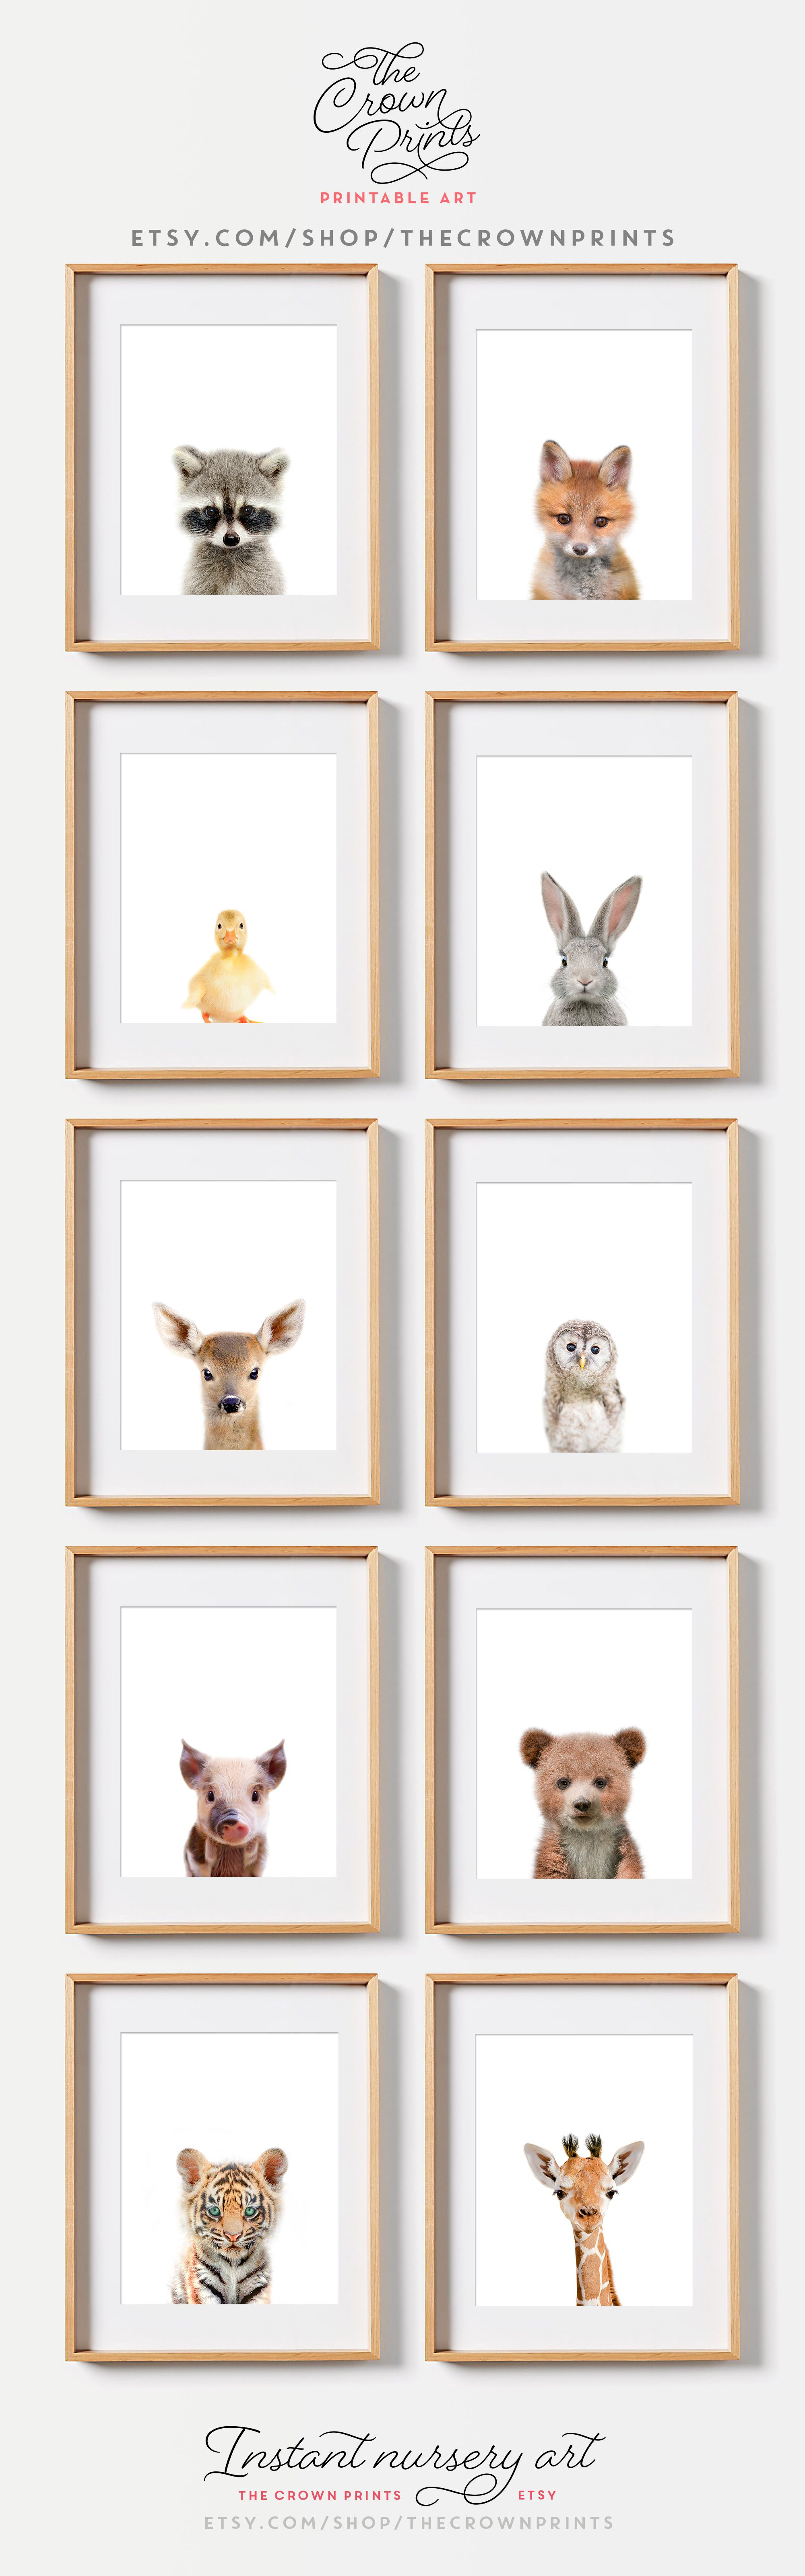 Woodland Animals Safari Nursery Art From The Crown Prints On Etsy Available As